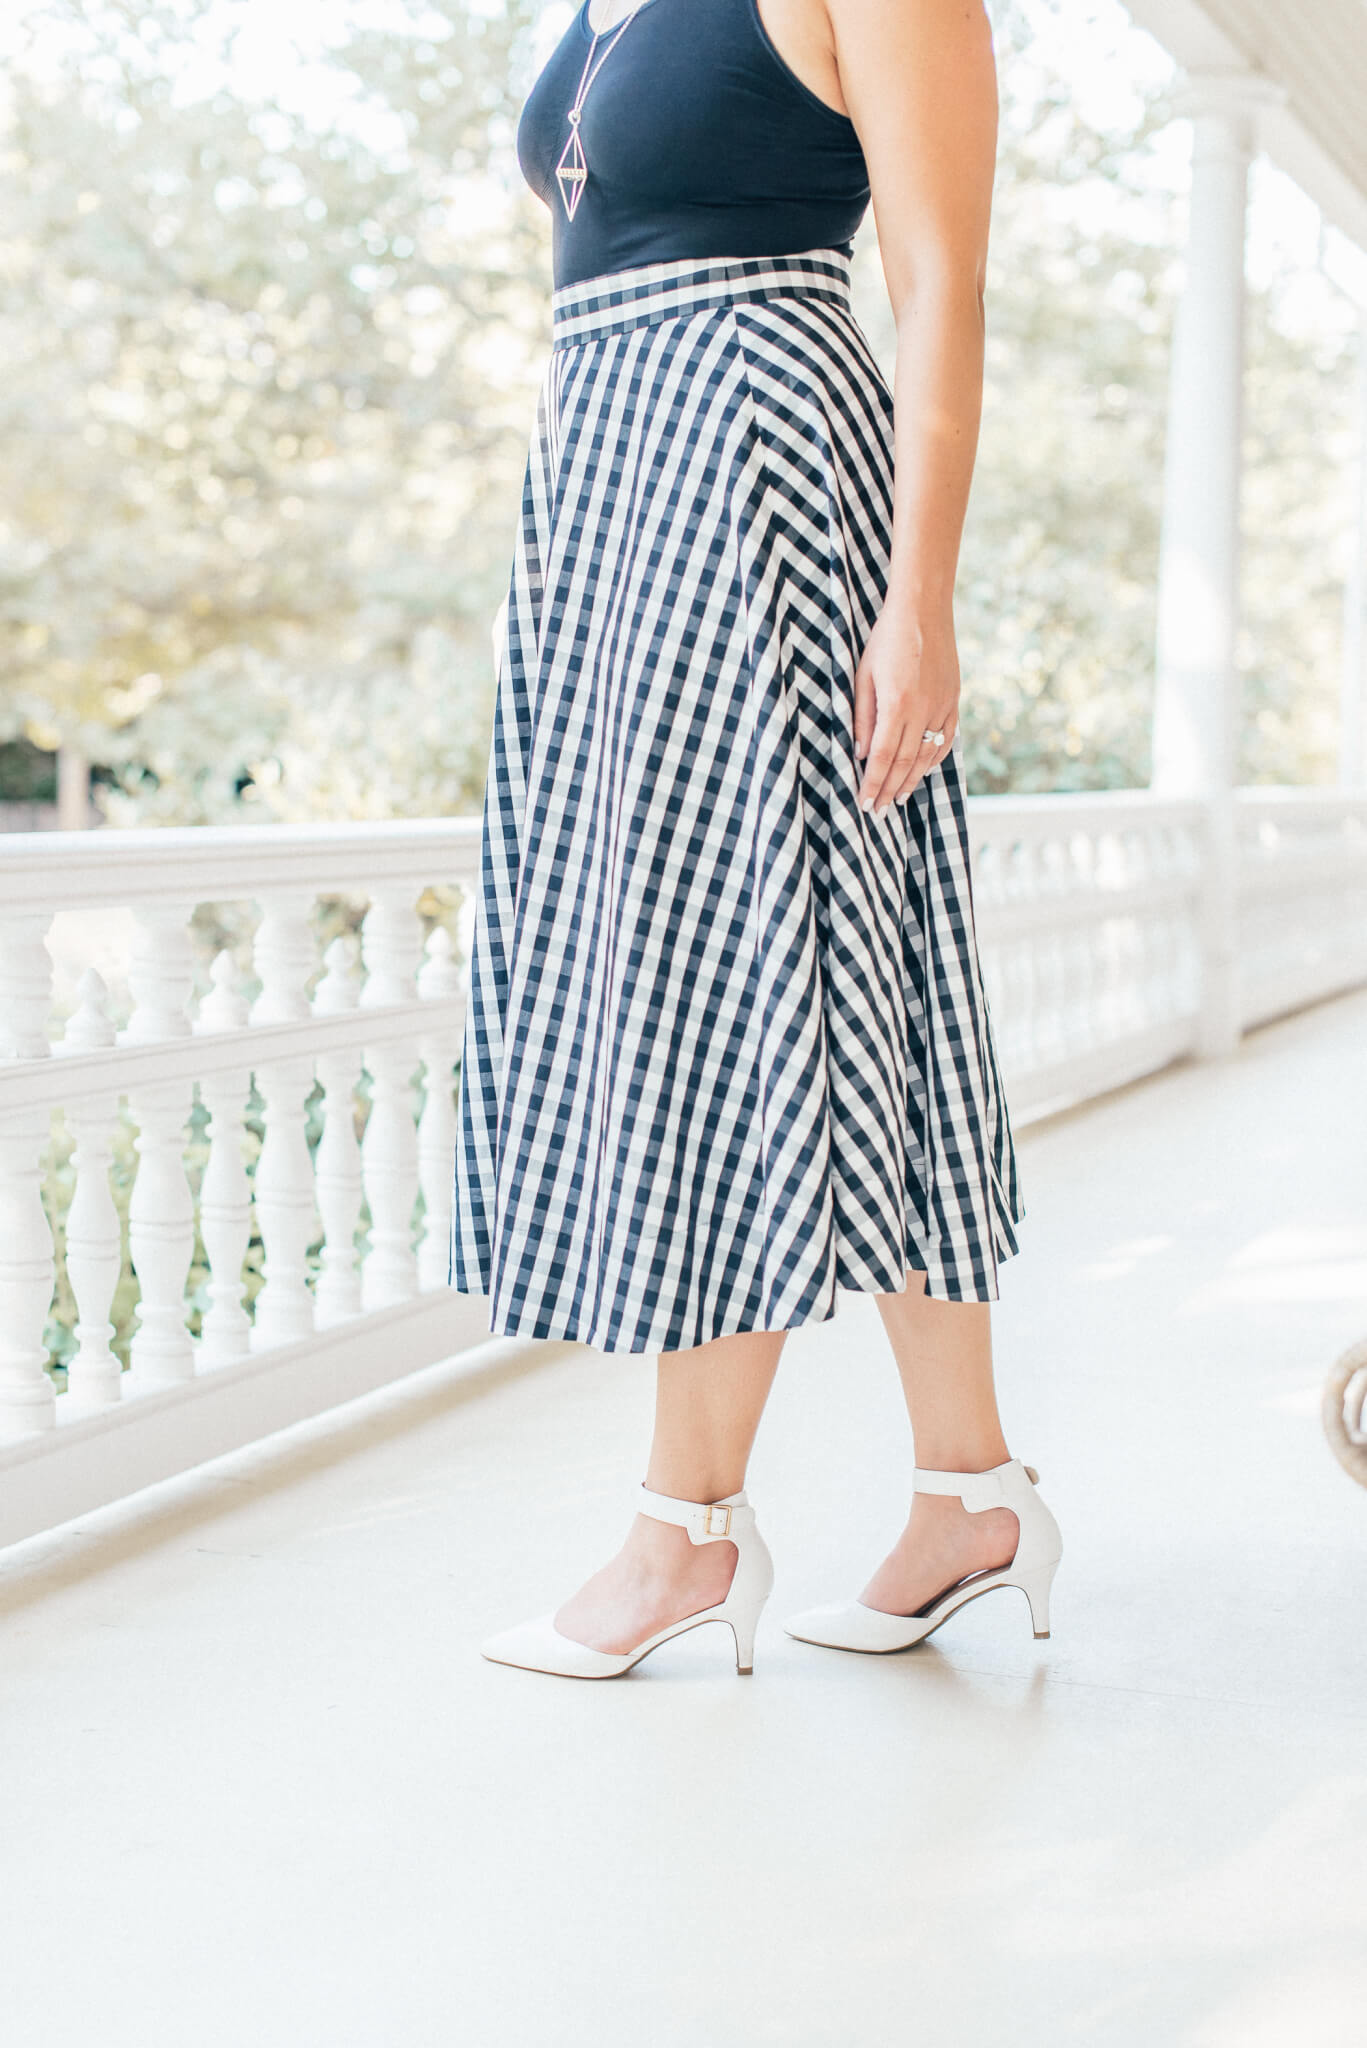 Amazon | Vacation | Travel Style | Kate Spade Gingham Circle Skirt in the Napa Valley featured by top San Francisco fashion blog What The Fab